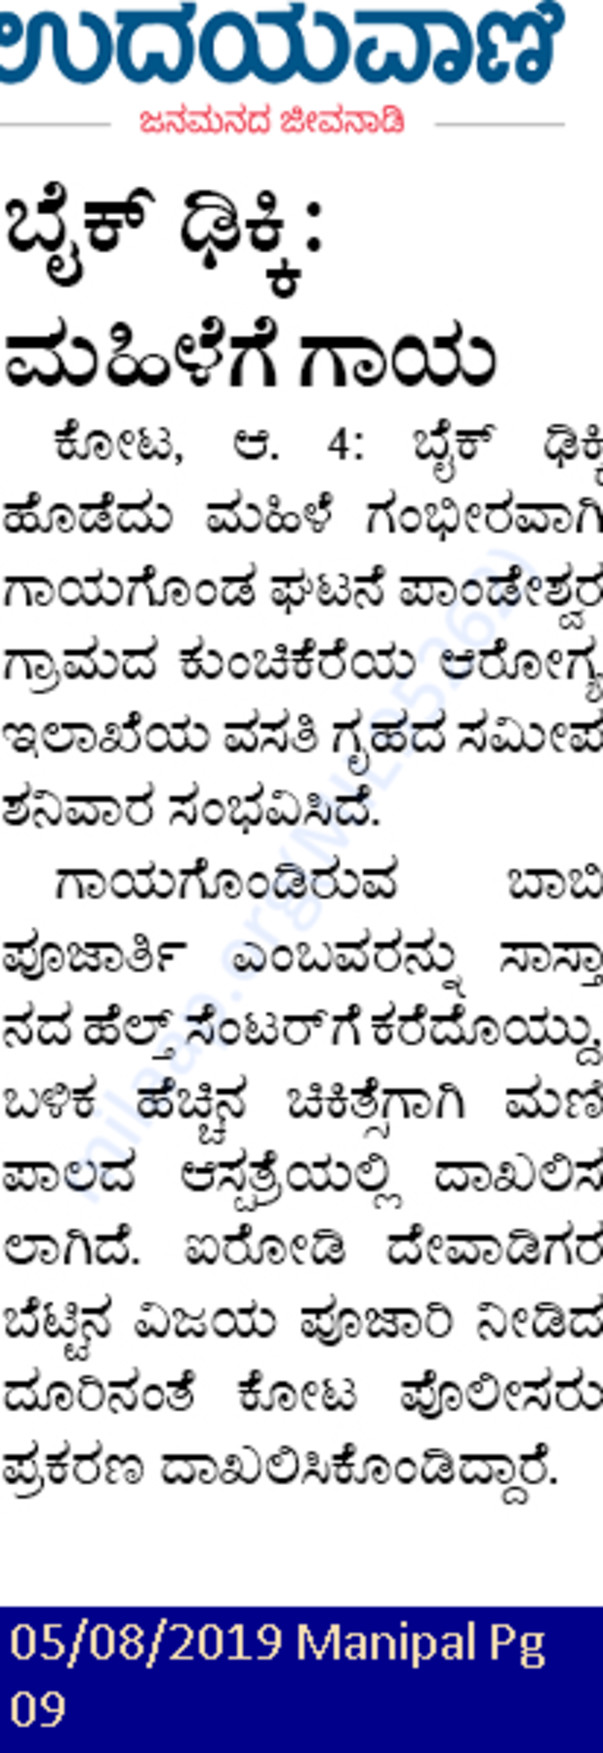 NEWS PUBLISHED IN UDAYAVANI NEWS PAPER